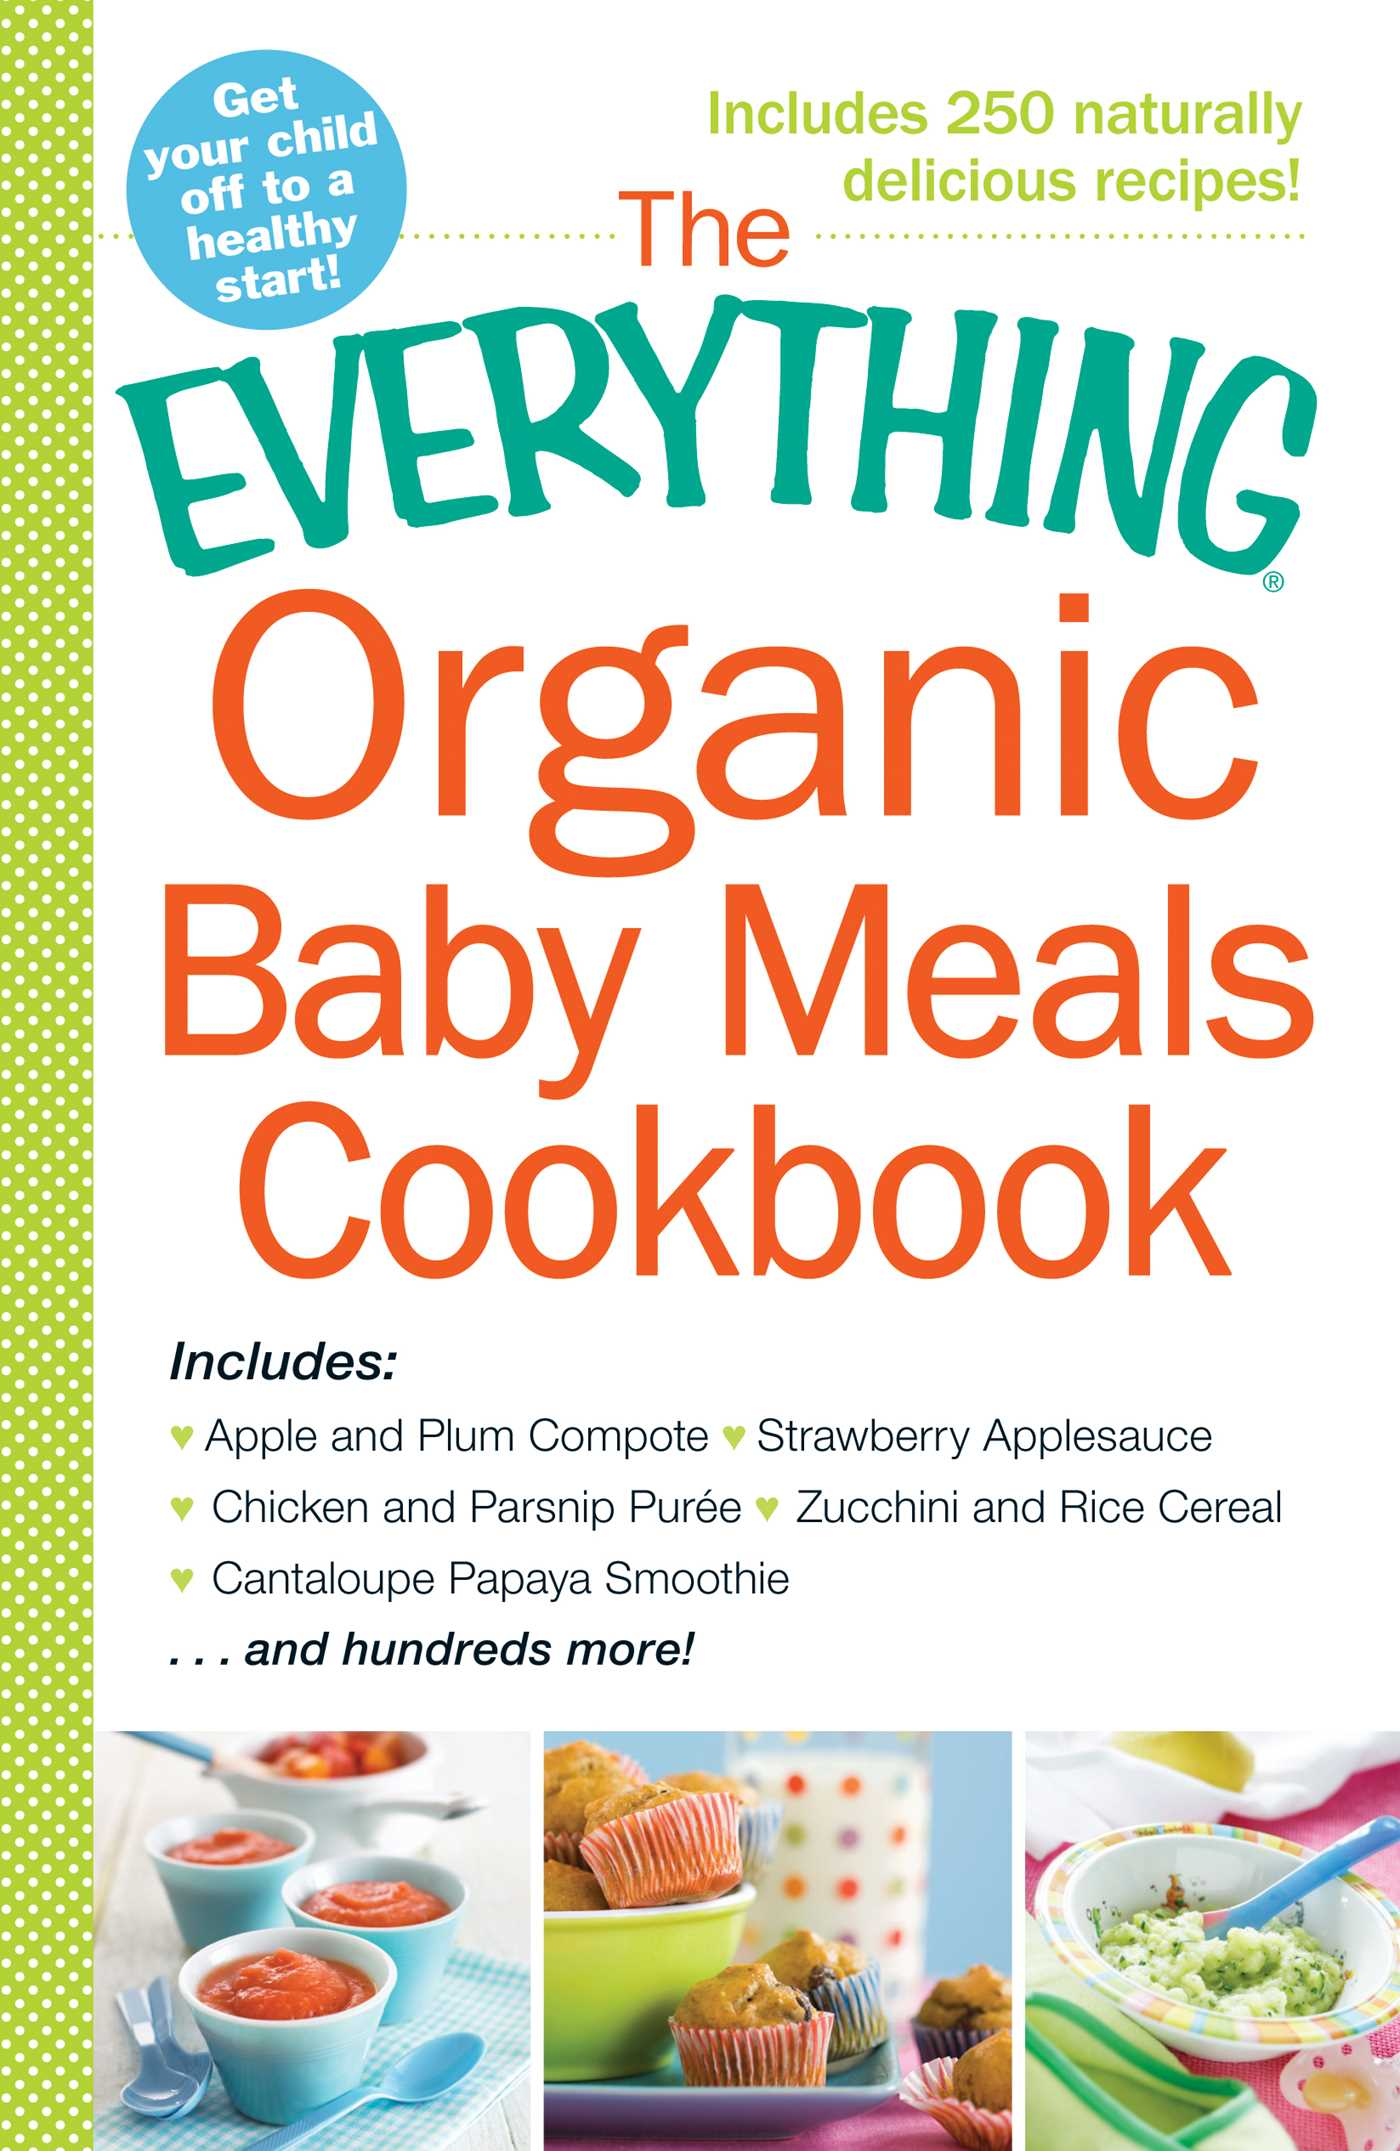 The everything organic baby meals cookbook book by adams media book cover image jpg the everything organic baby meals cookbook forumfinder Choice Image